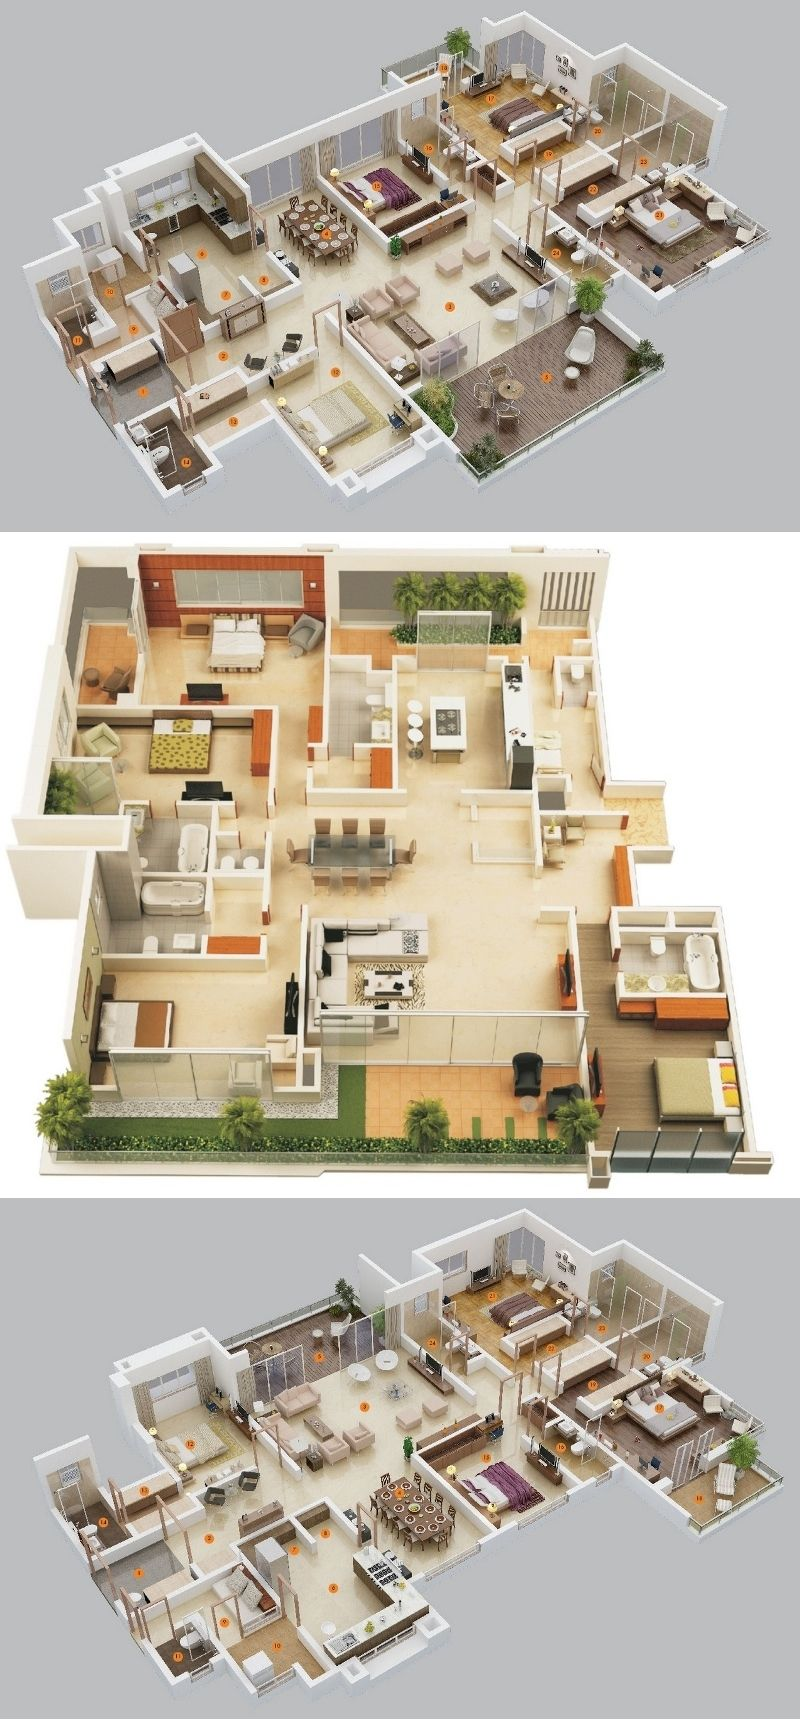 bedroom apartmenthouse plans source privie world house design